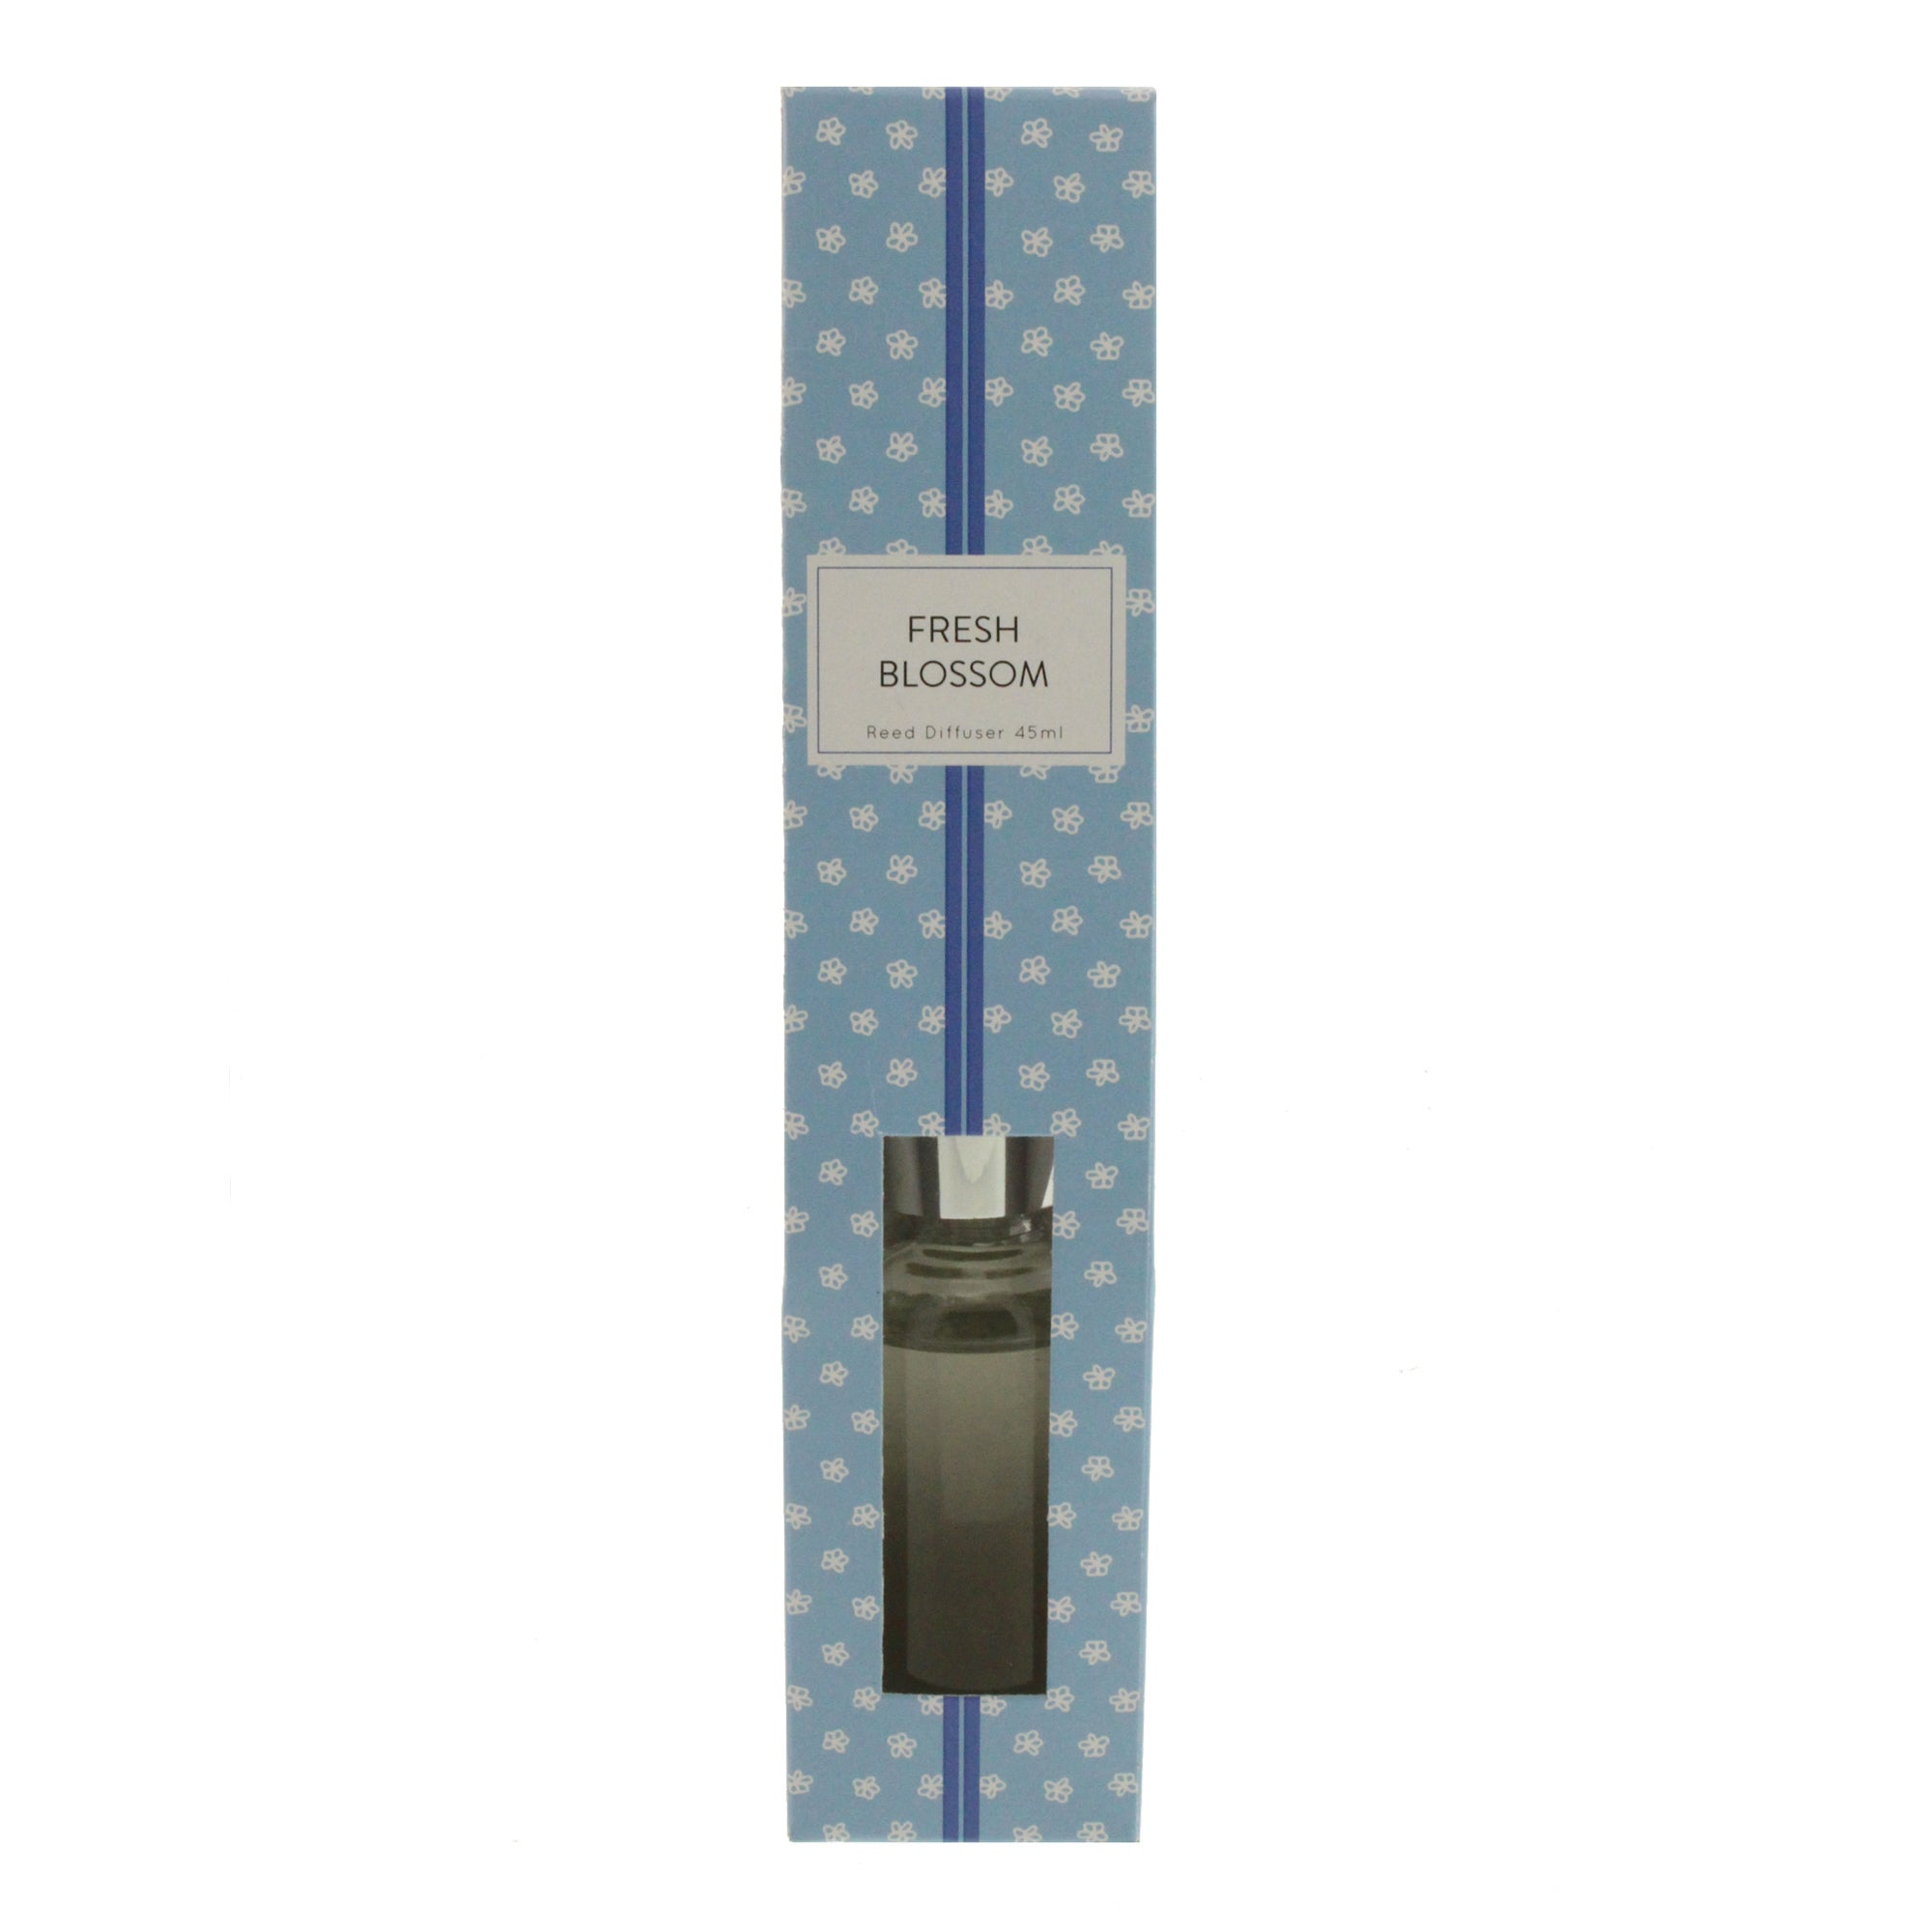 Home Fragrance Fresh Blossom 45ml Reed Diffuser